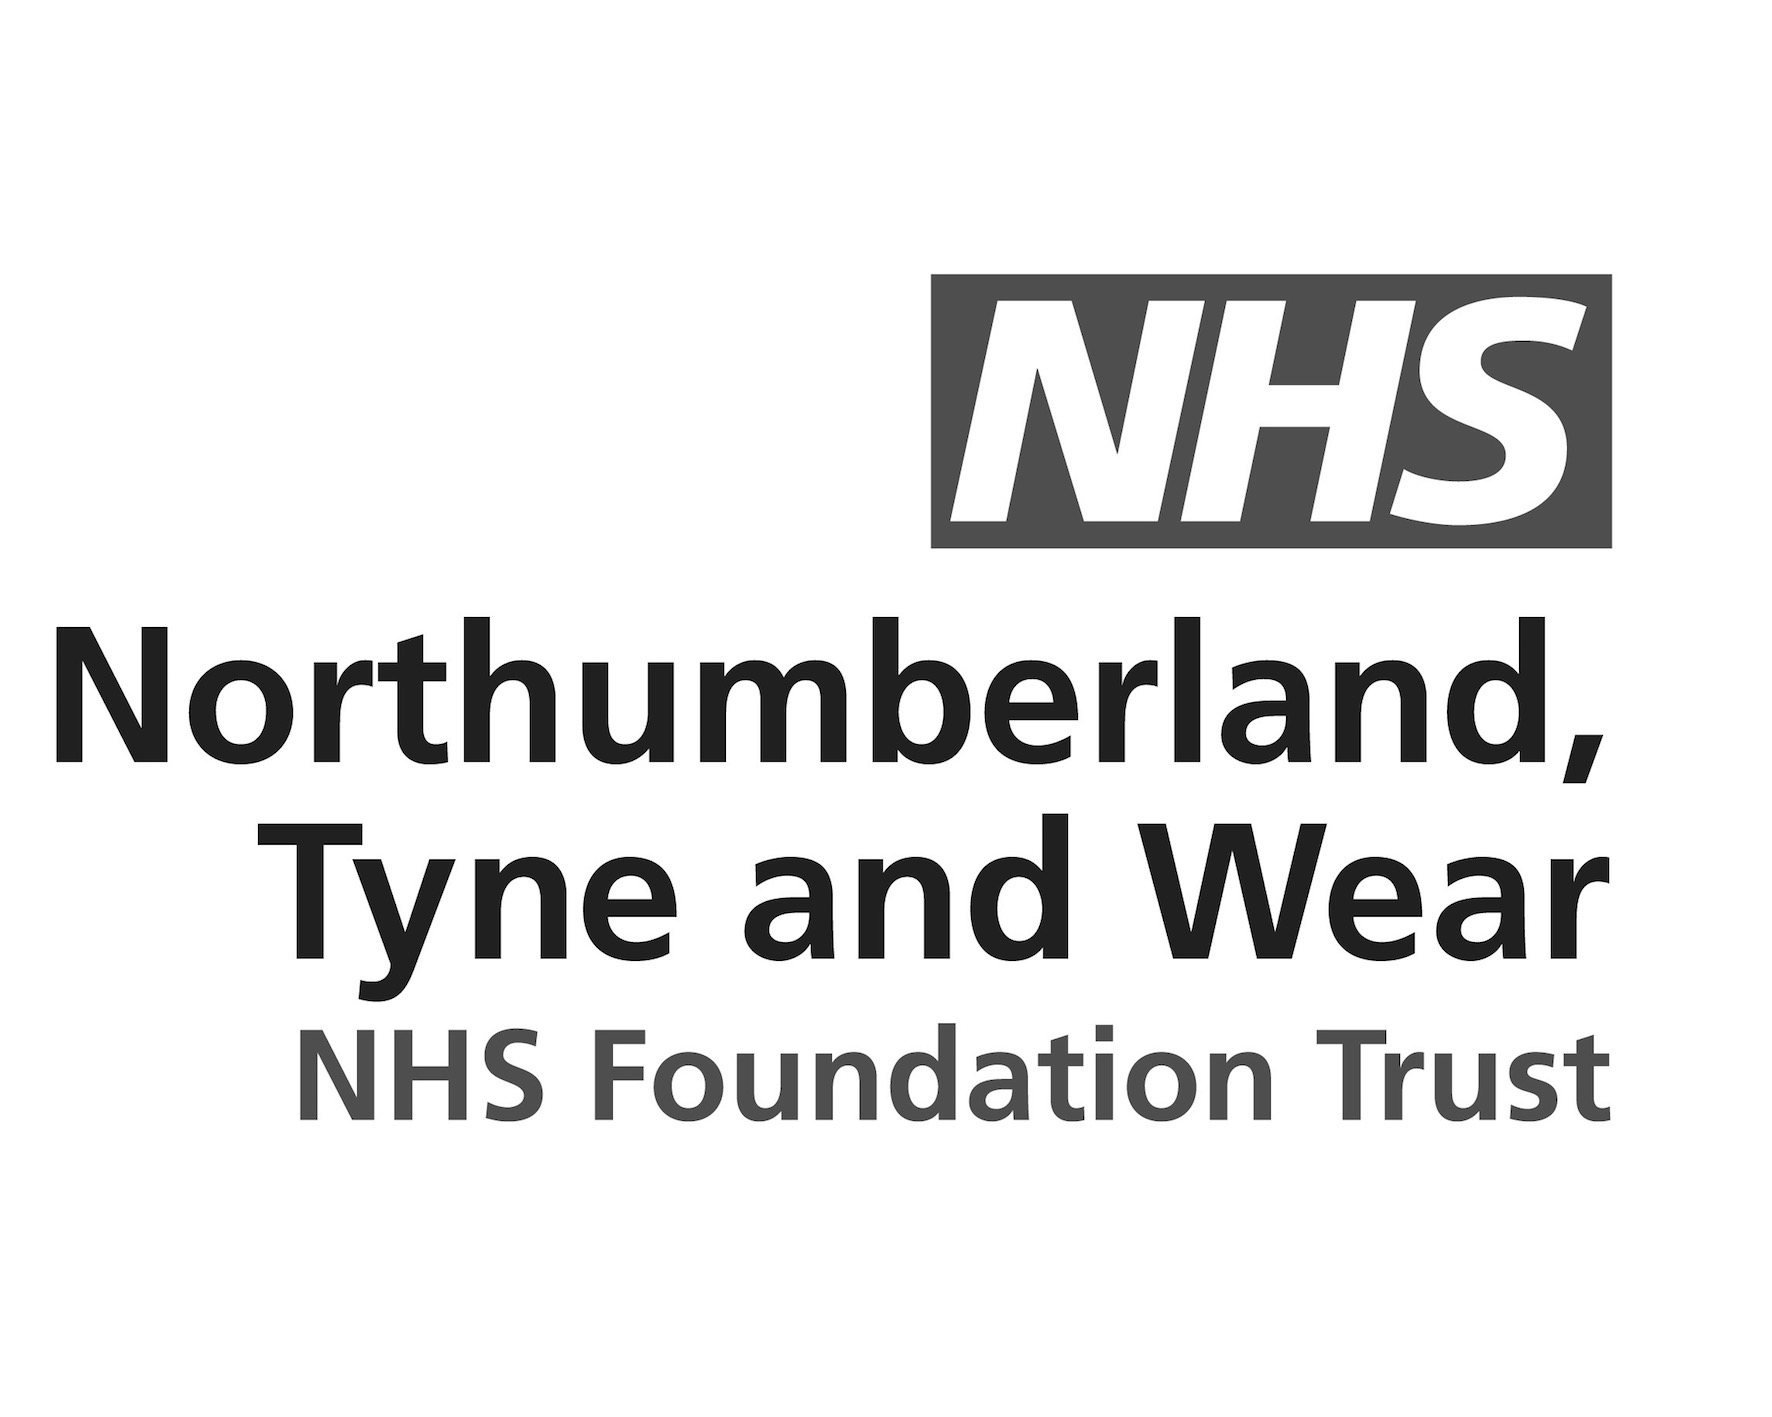 Northumberland Tyne and Wear Foundation NHS Trust